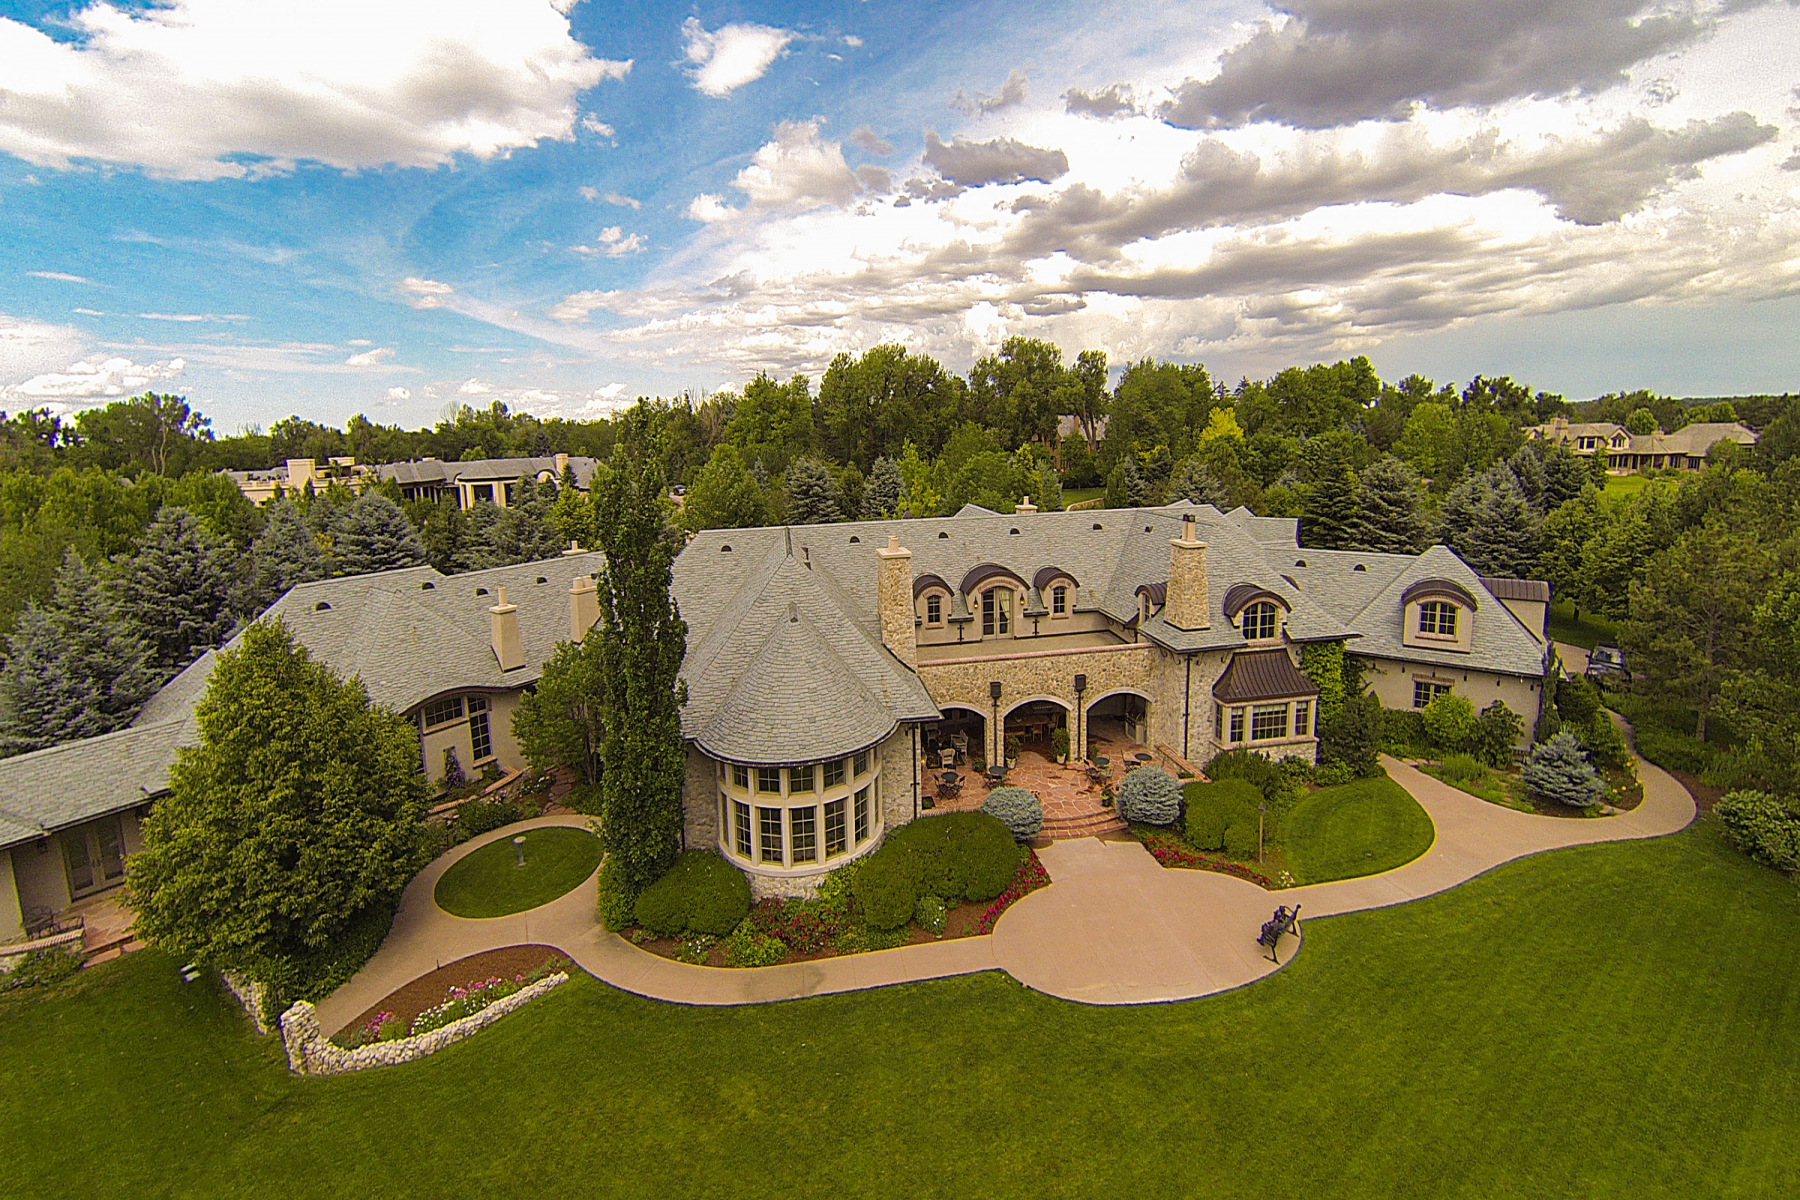 Property For Sale at Greystone Manor Boasts Spectacular Mountain Views